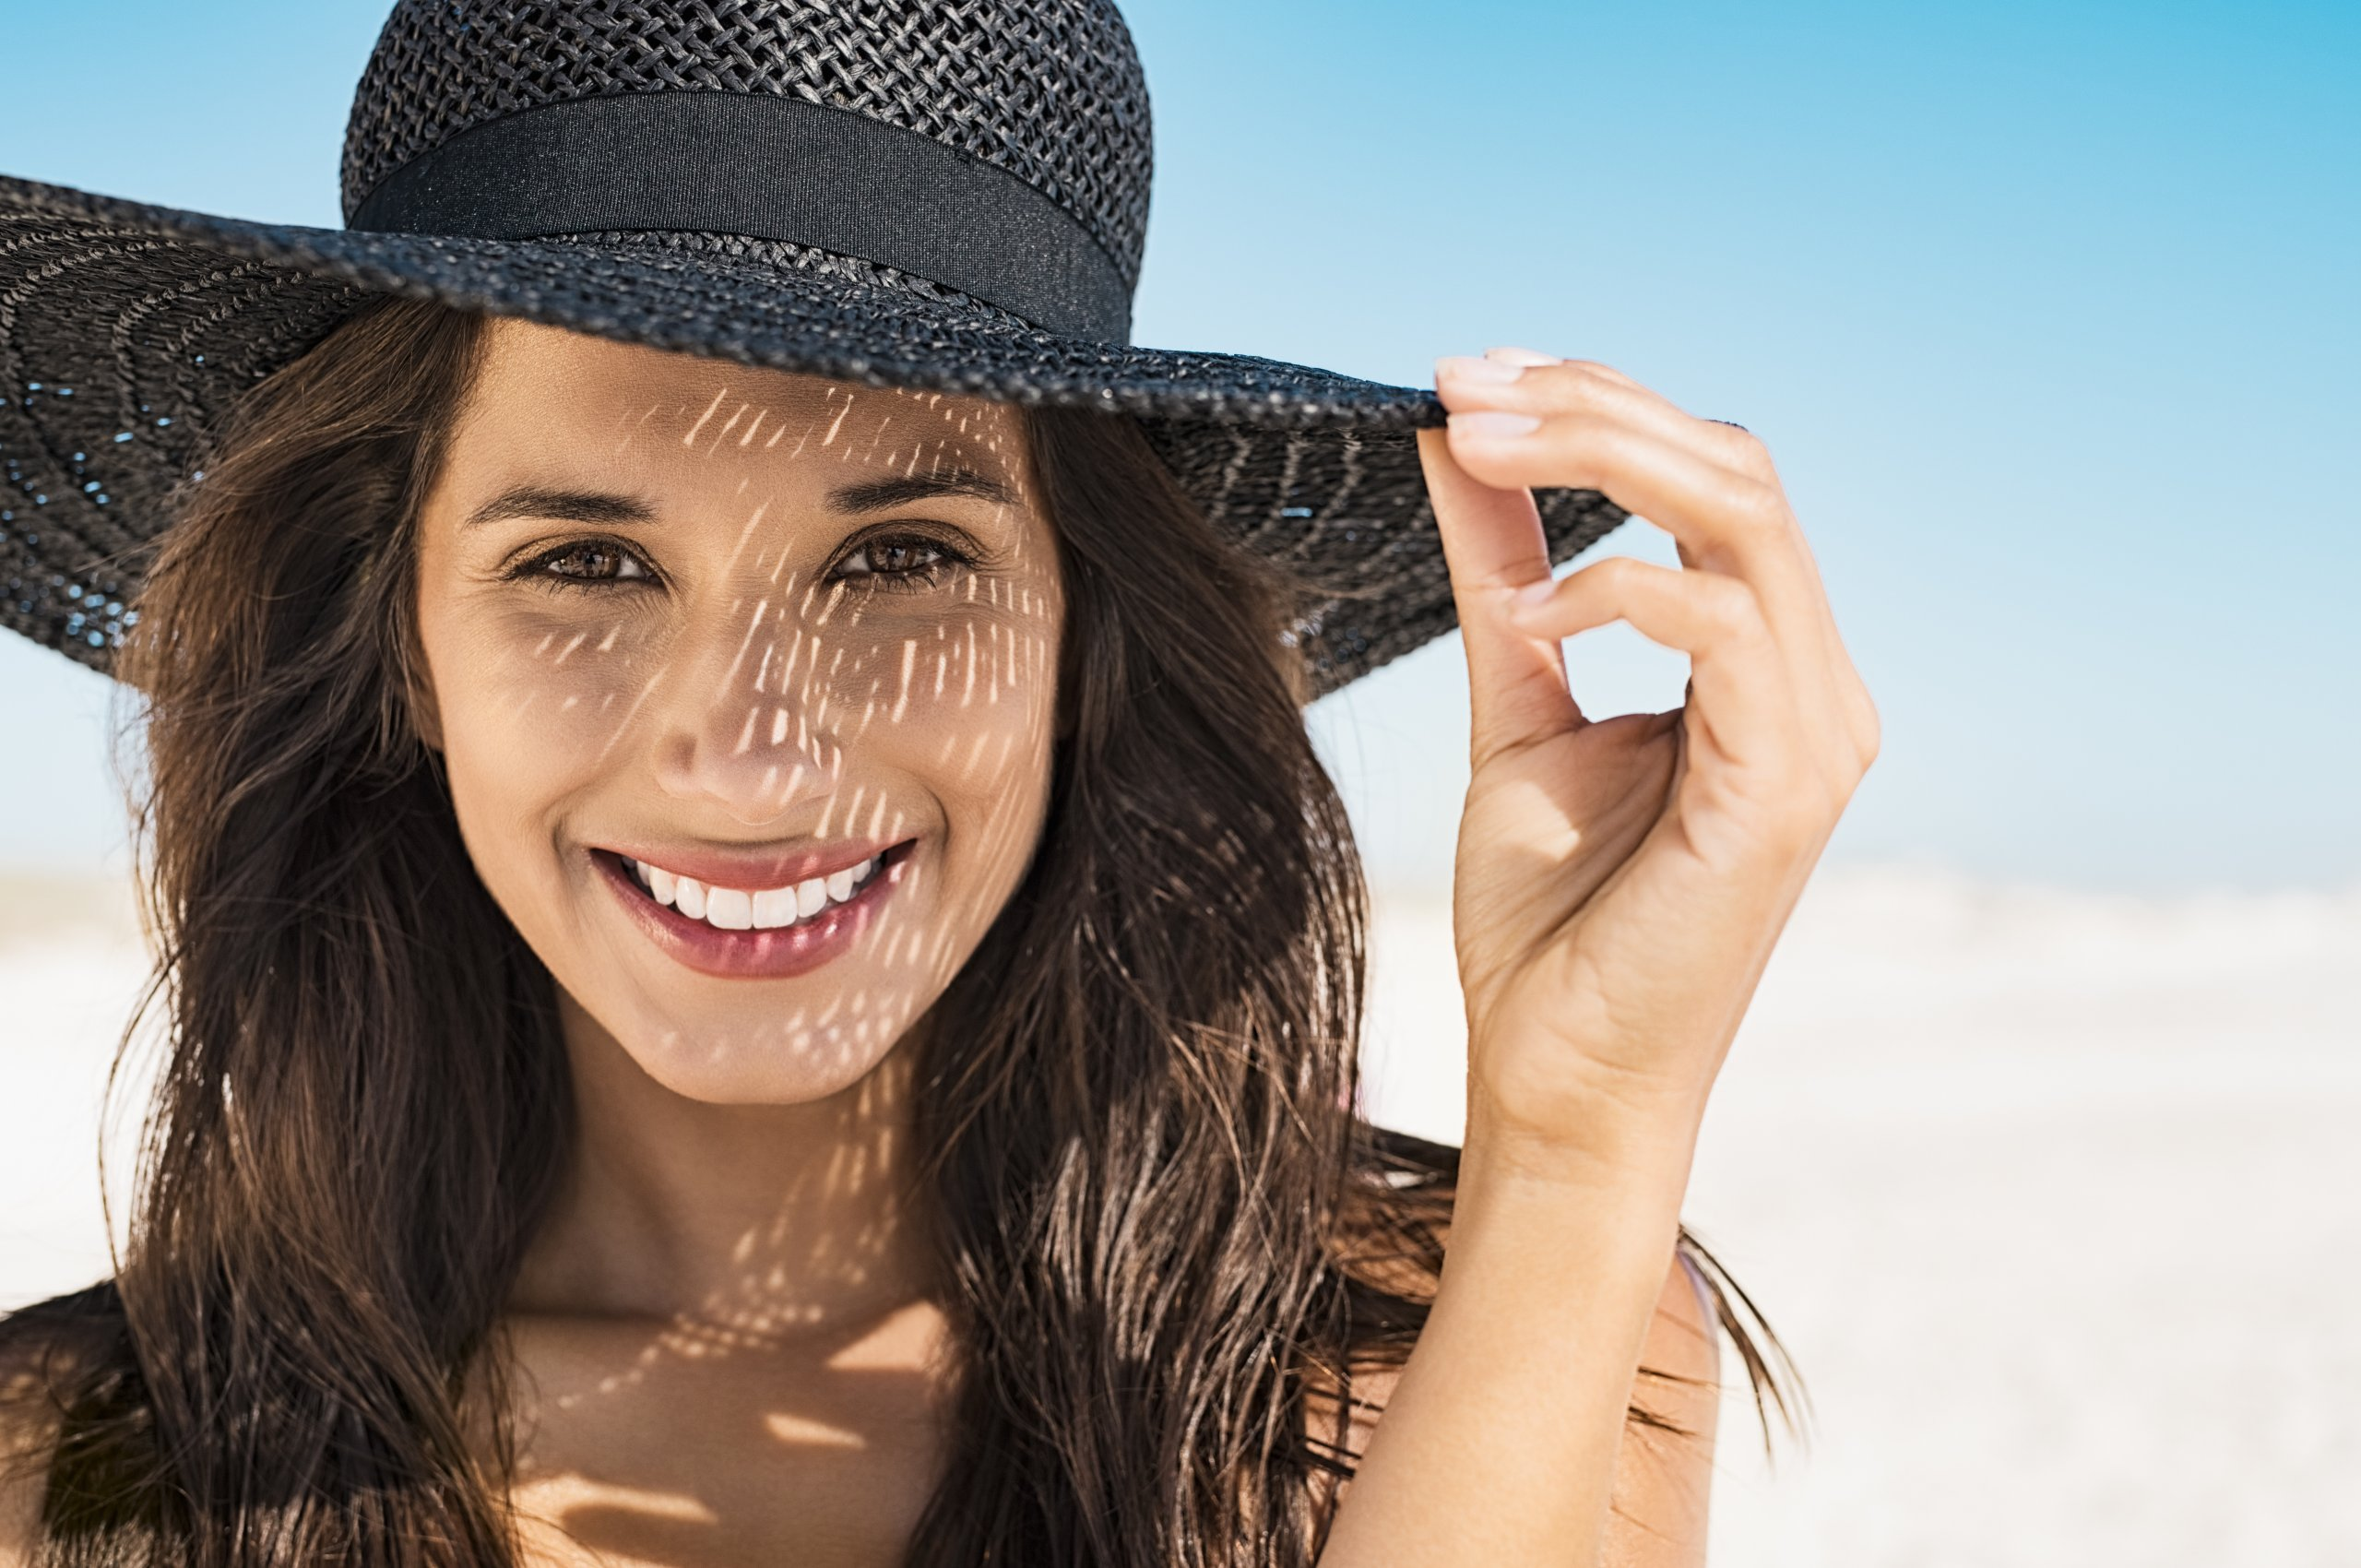 Portrait of beautiful young woman wearing summer black hat with large brim at beach. Closeup face of attractive girl with black straw hat. Happy latin woman smiling and looking at camera with sea in background.